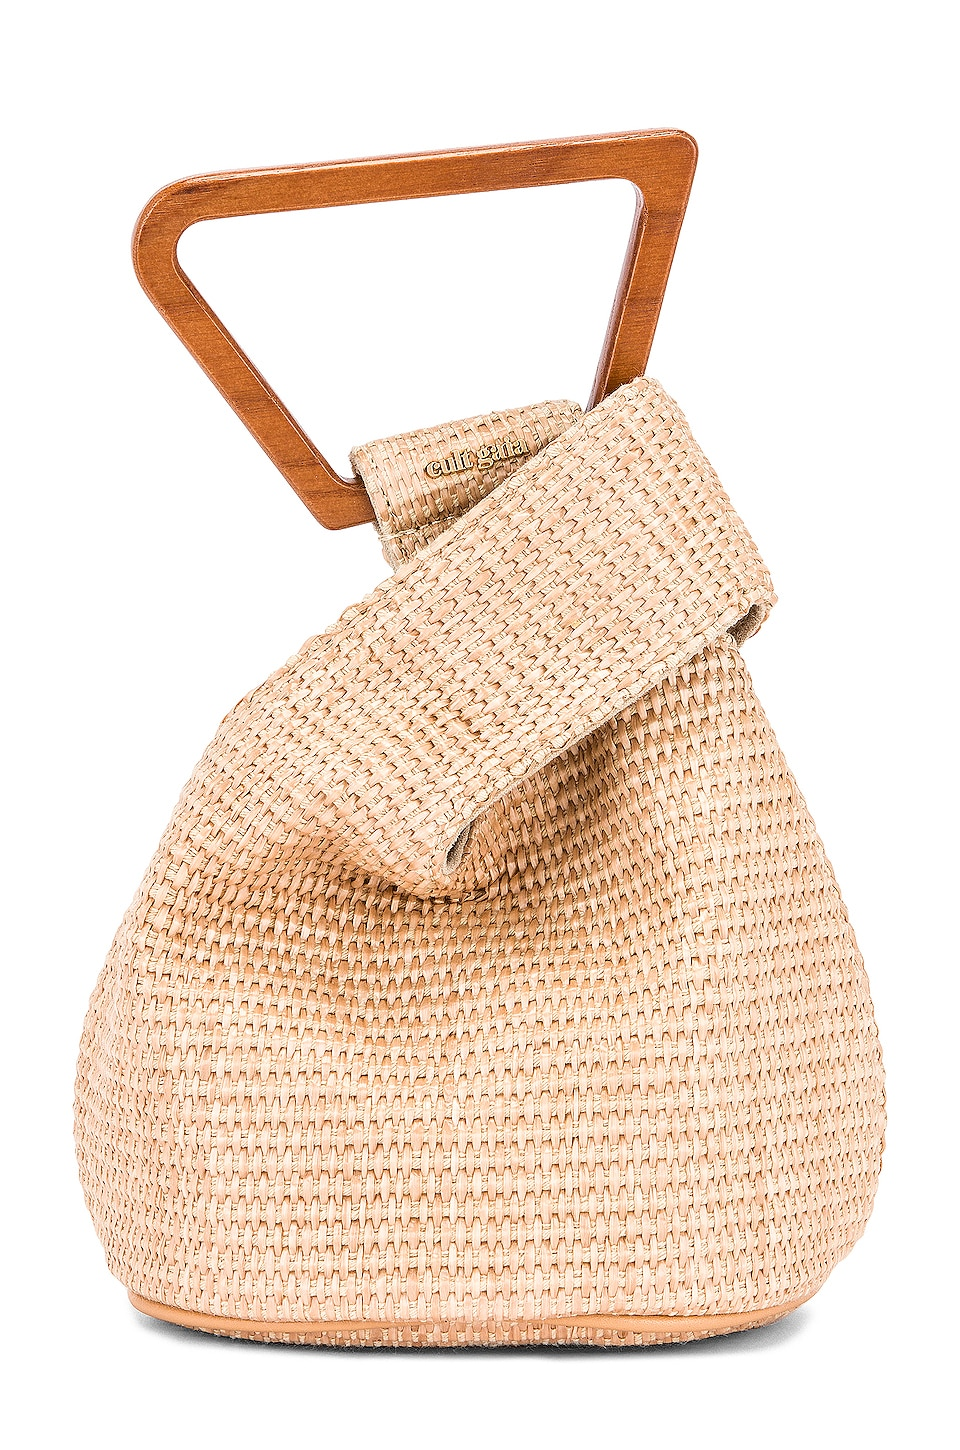 Cult Gaia Mini Astrea Tote in Natural